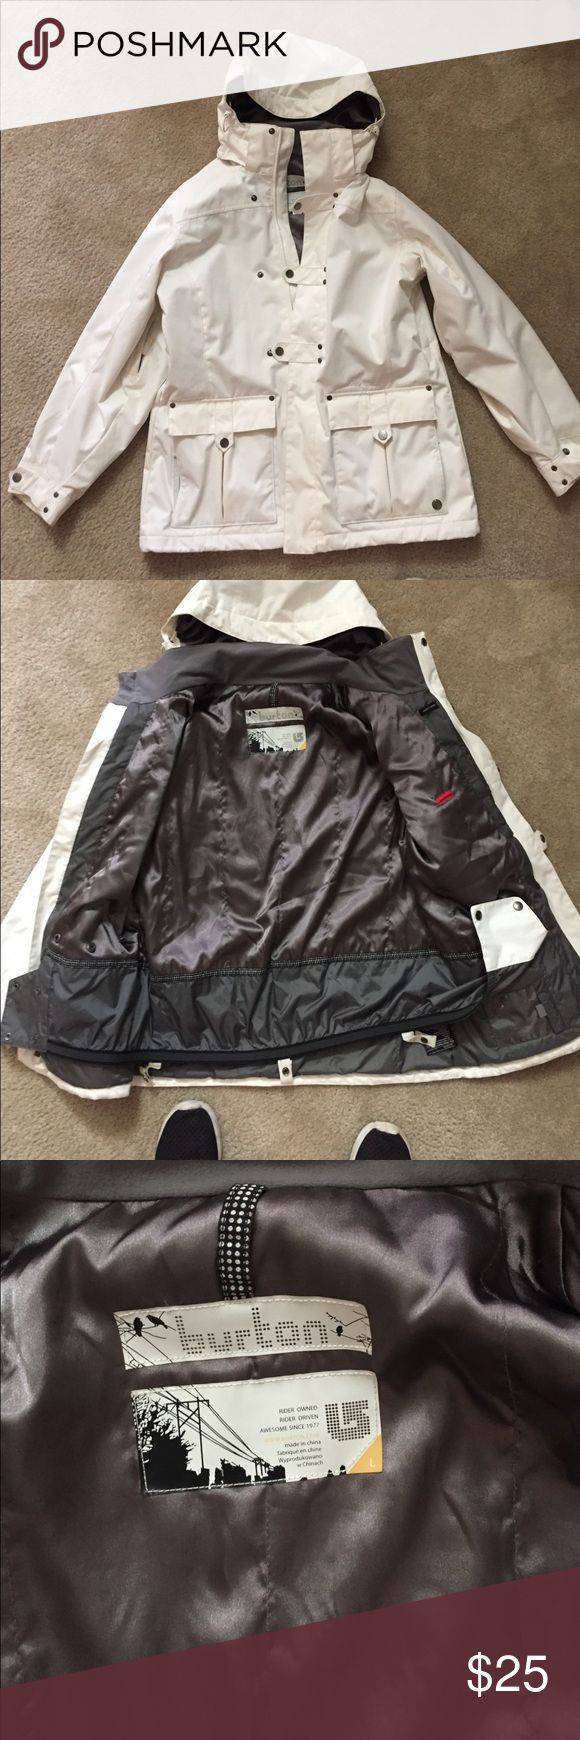 Burton white jacket Womens large burton jacket. Need a new one so I have to sell this. Smoke free very white. If you have it dry clean it will be brand new. Burton Jackets & Coats